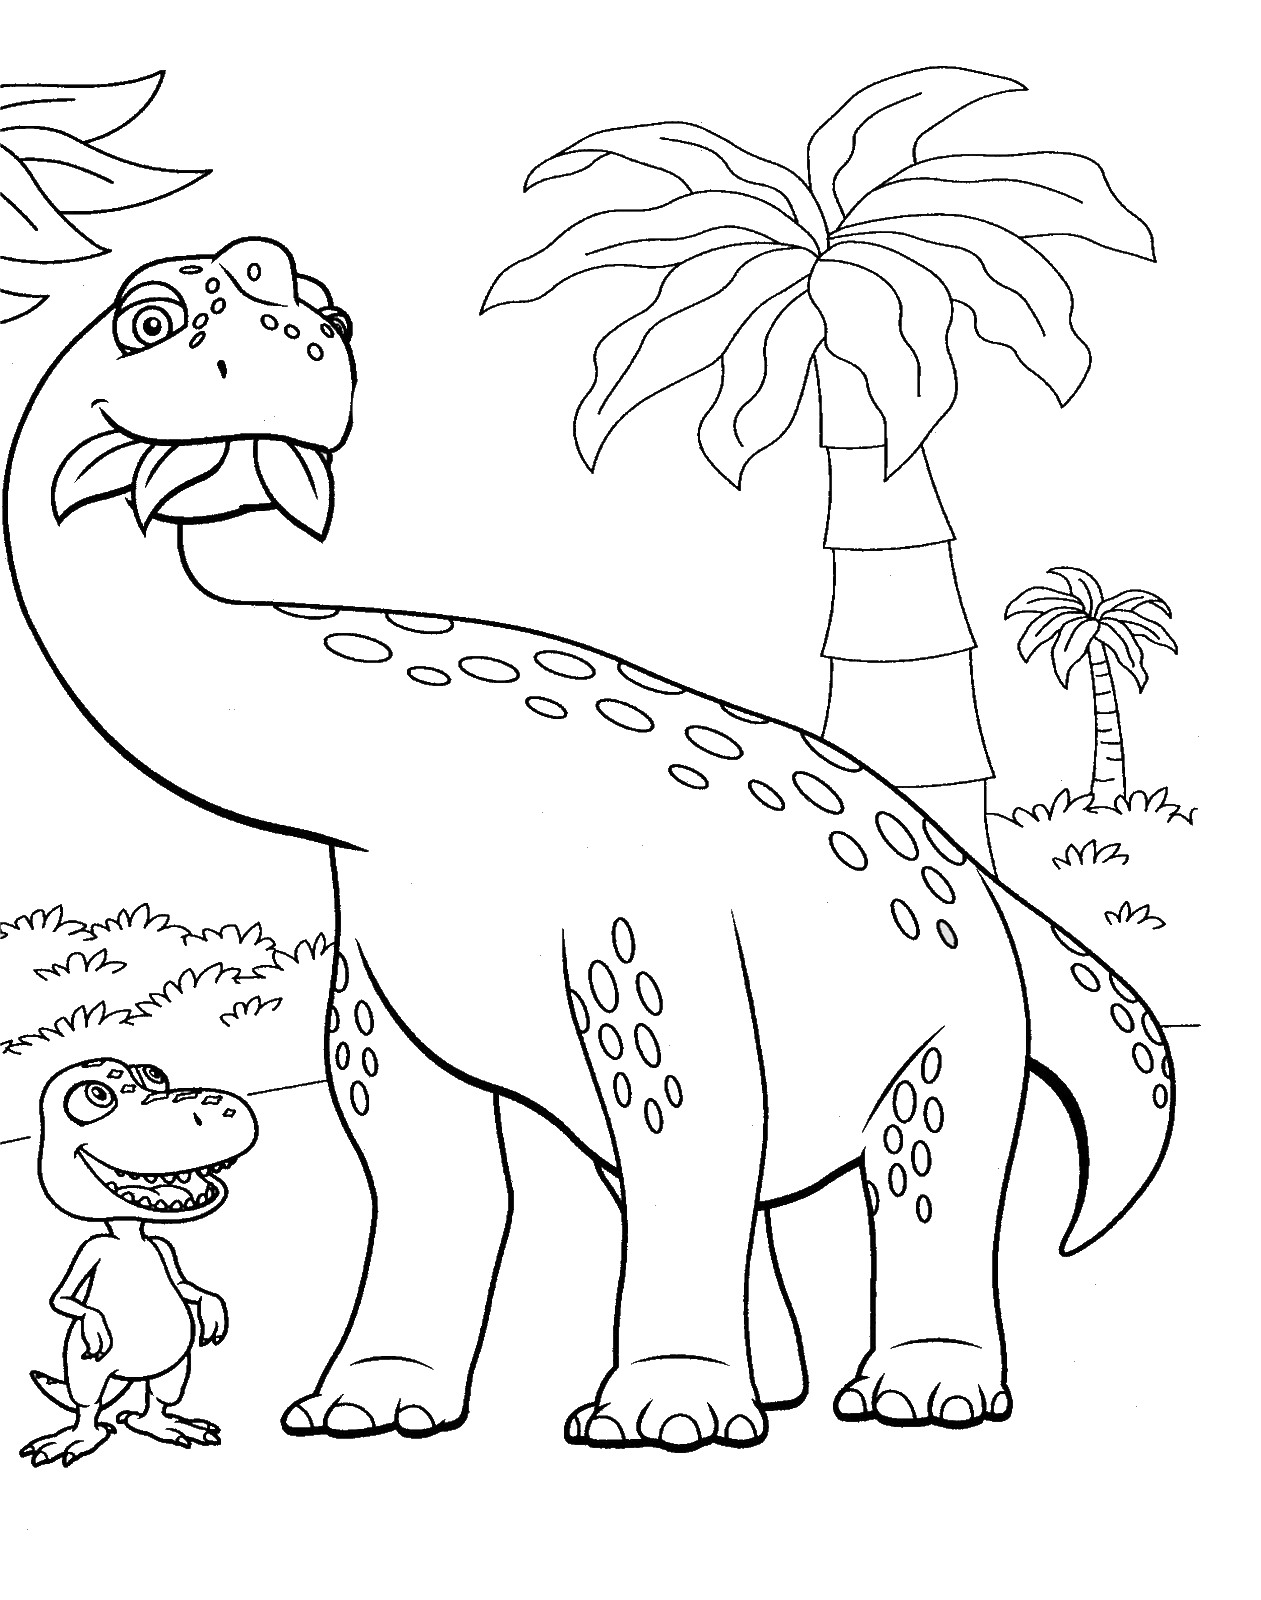 dinosaur printables free printable dinosaur coloring pages for kids dinosaur printables